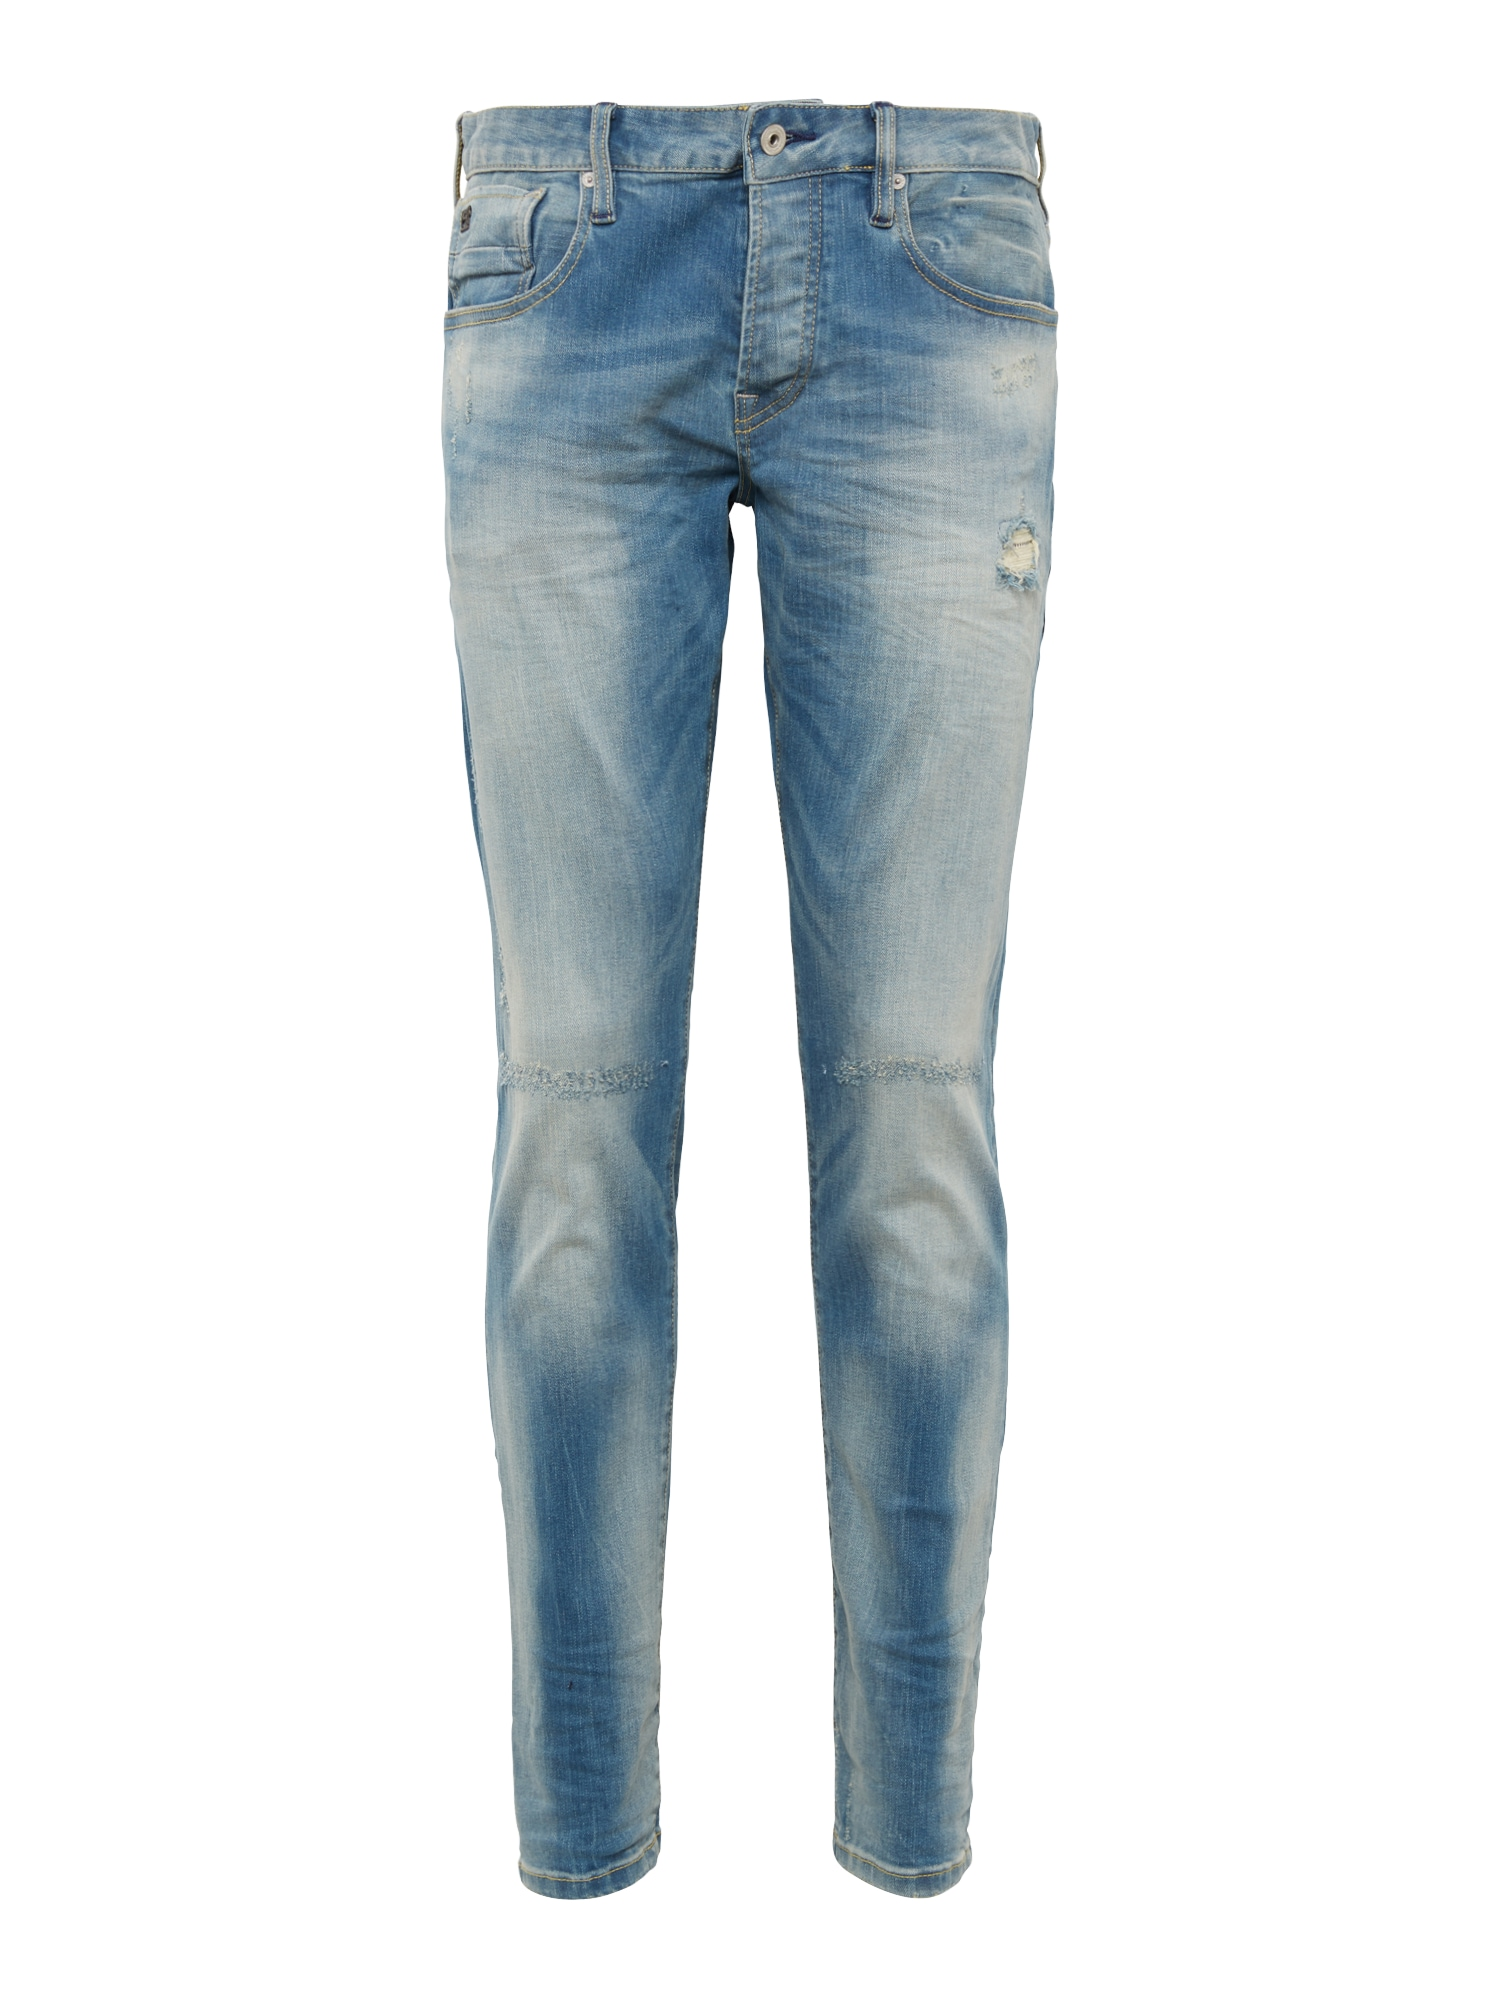 SCOTCH  and  SODA Heren Jeans Ralston Seaboots Repair blue denim